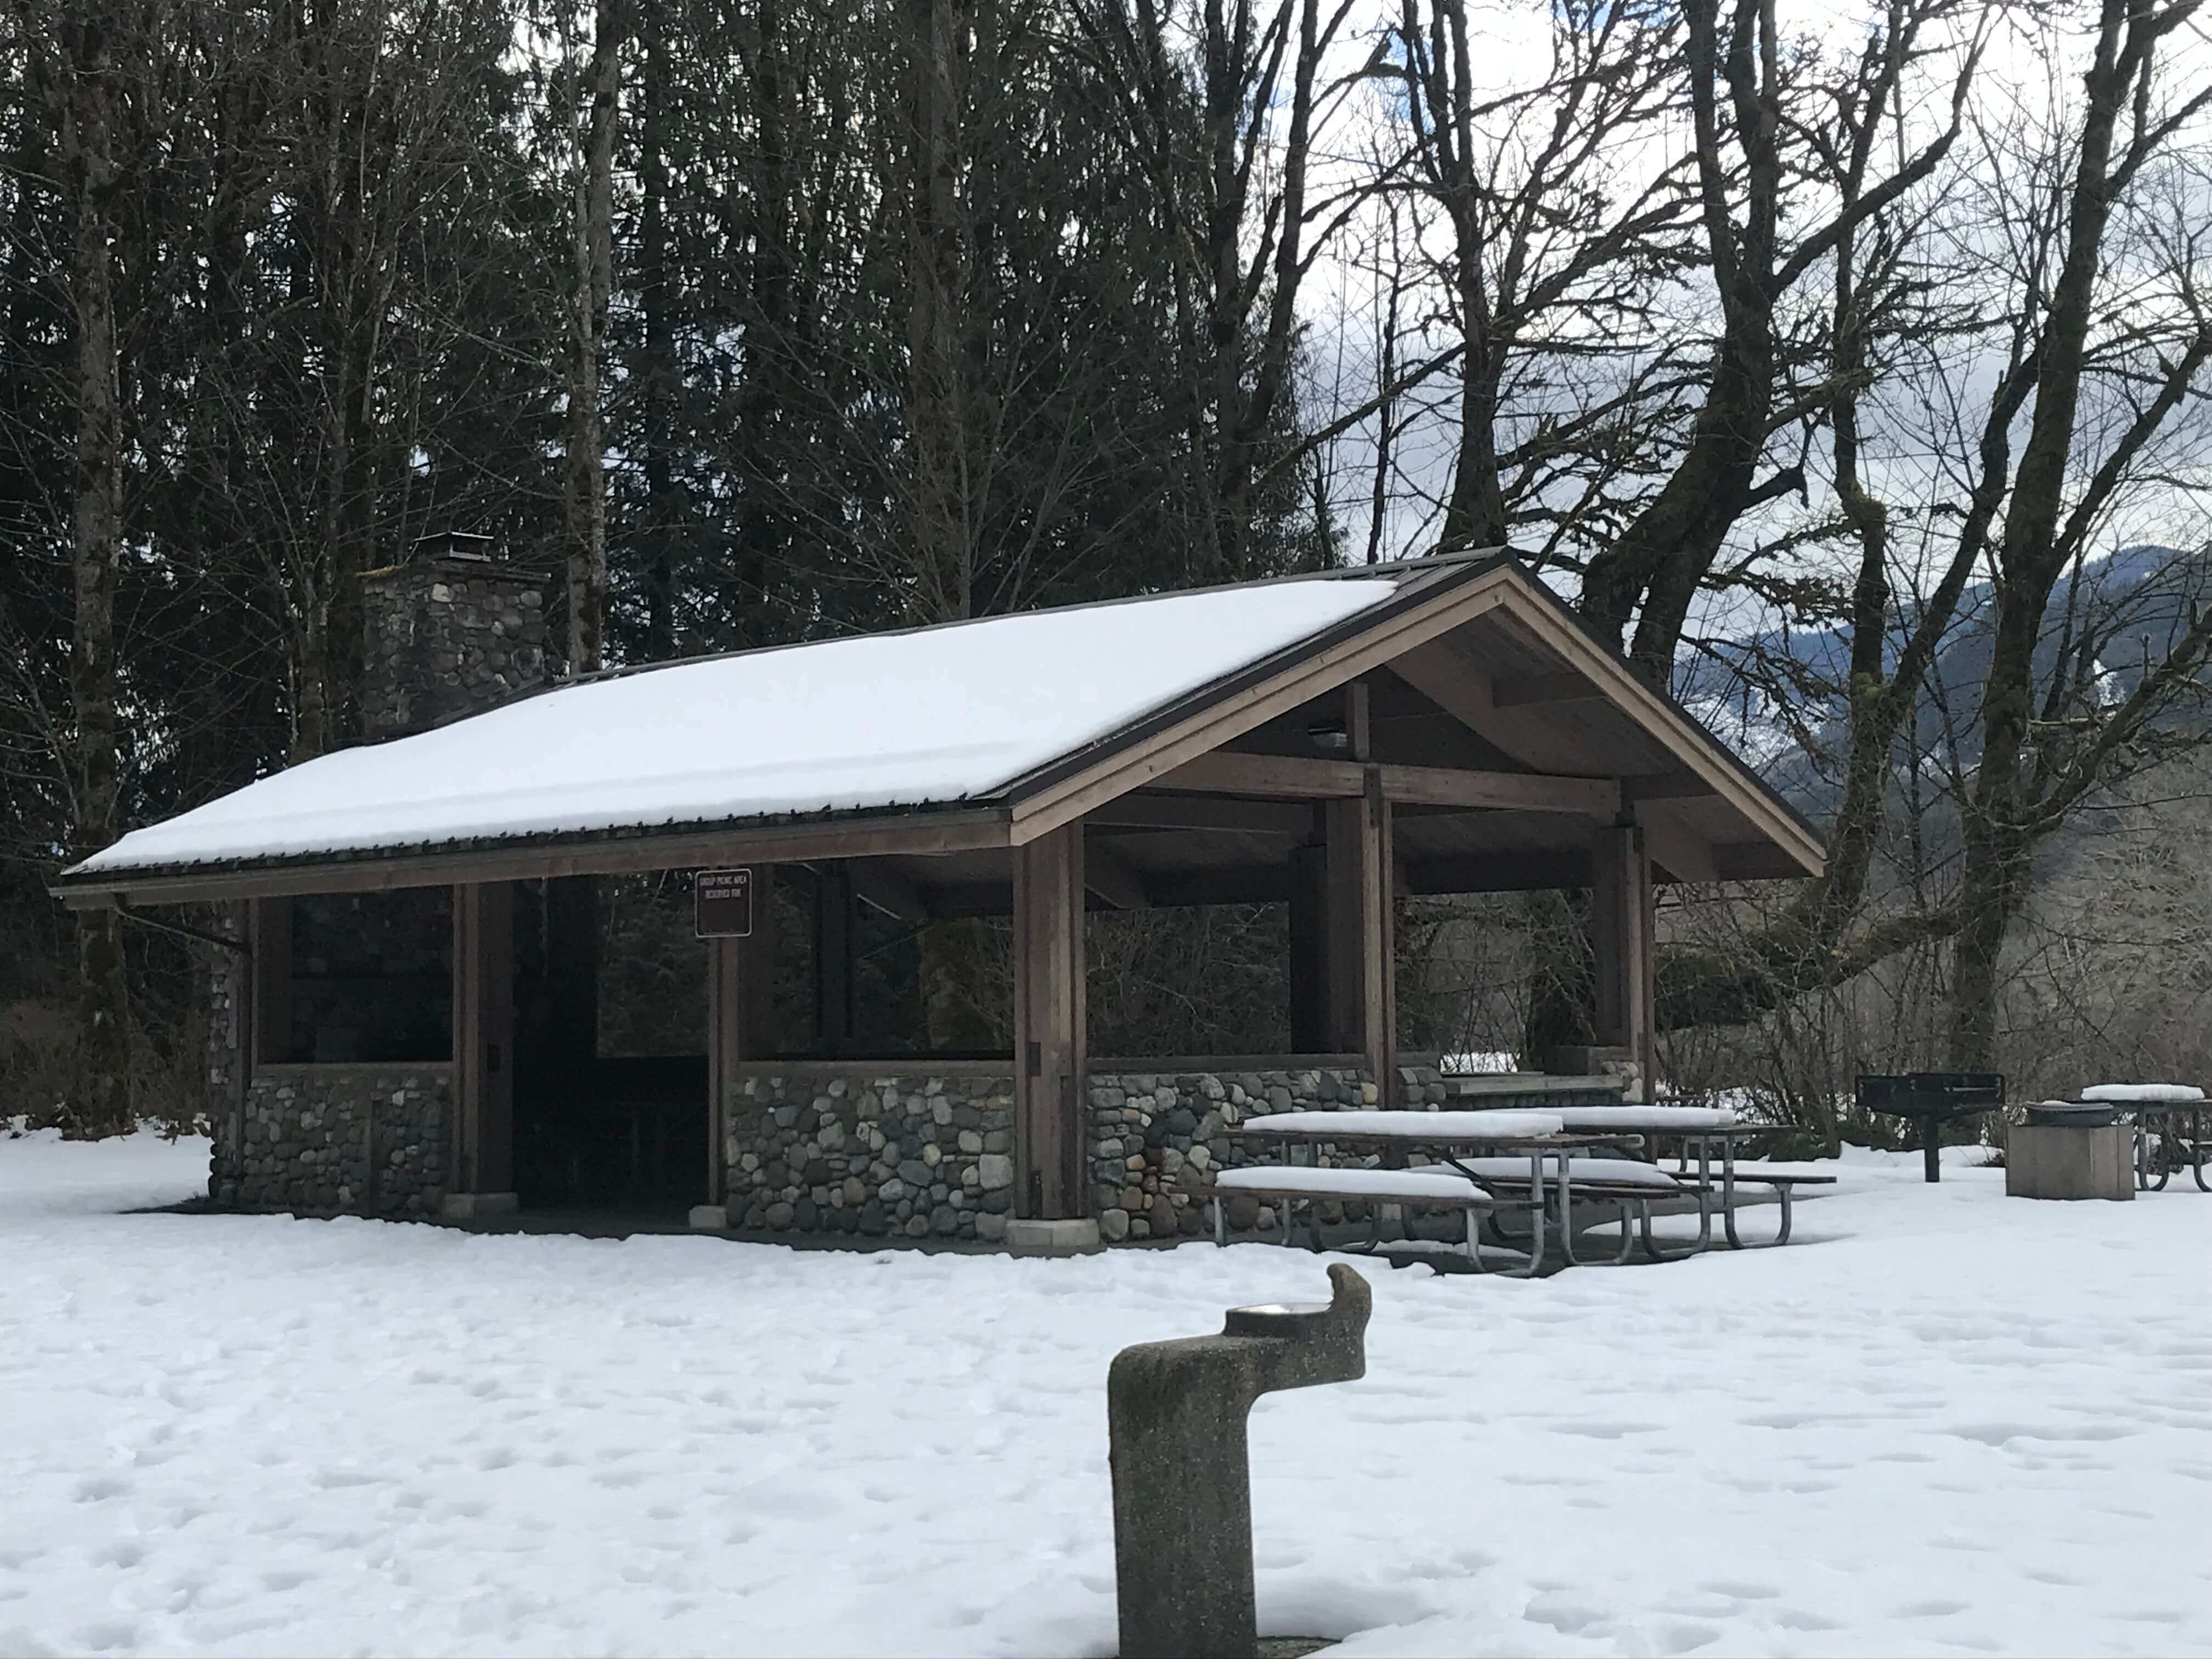 Rasar State Park, Skagit County<br>Stephen Story, Architect